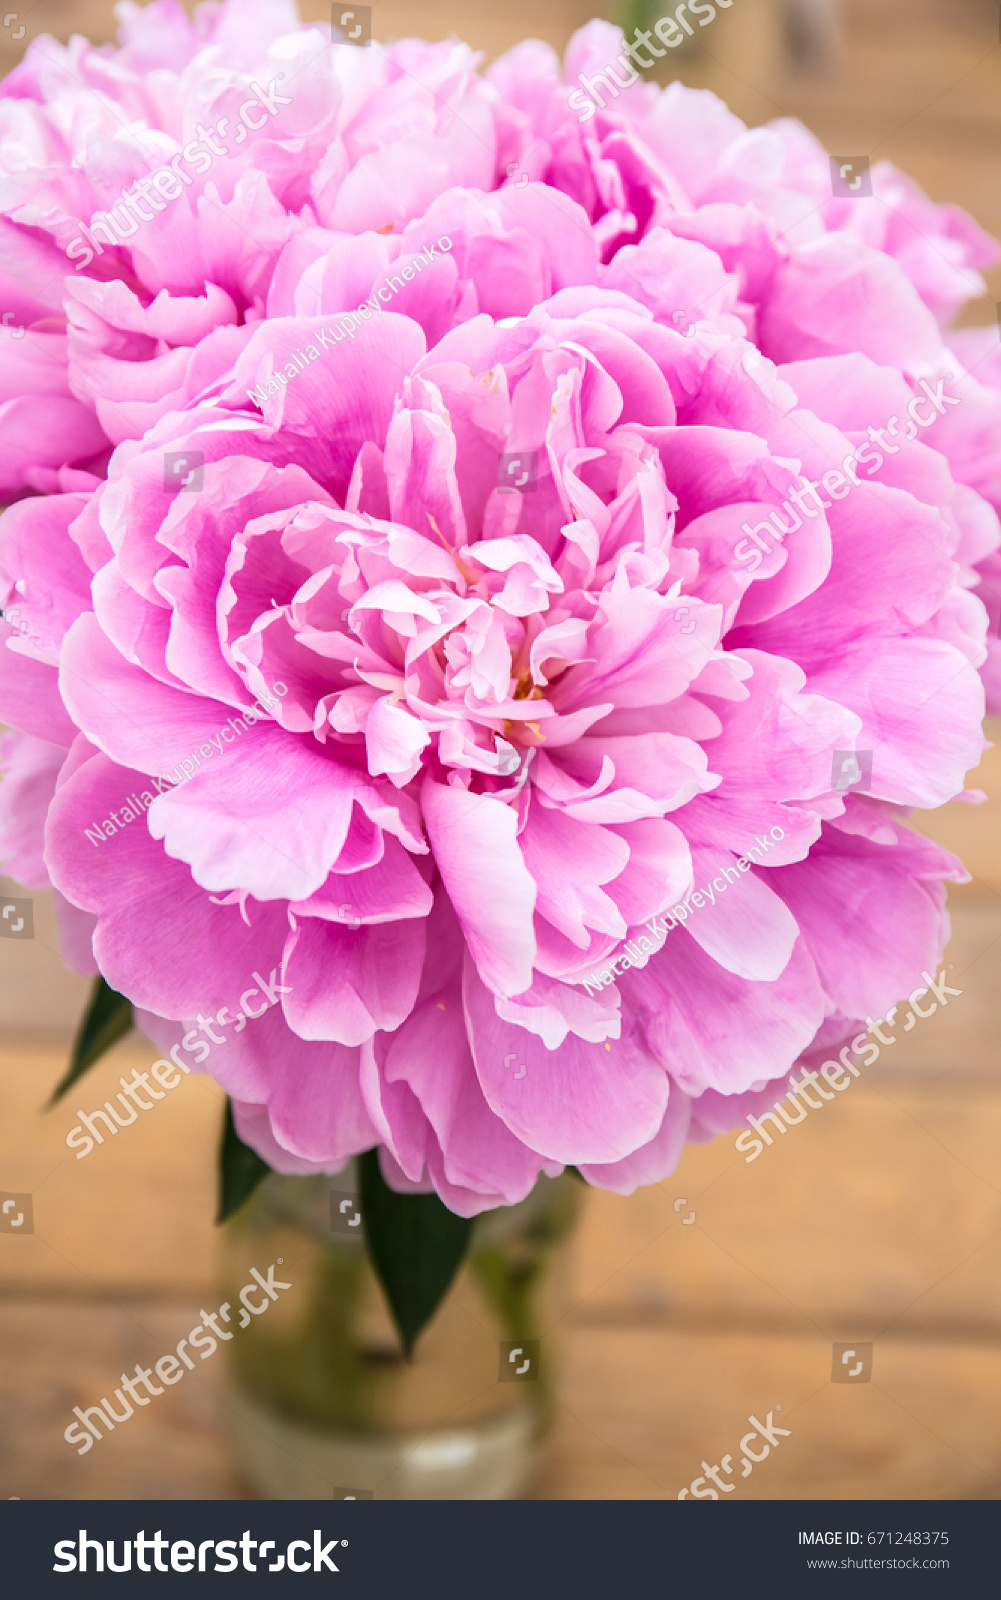 lovely pink peony for greeting card and wallpaper. close up